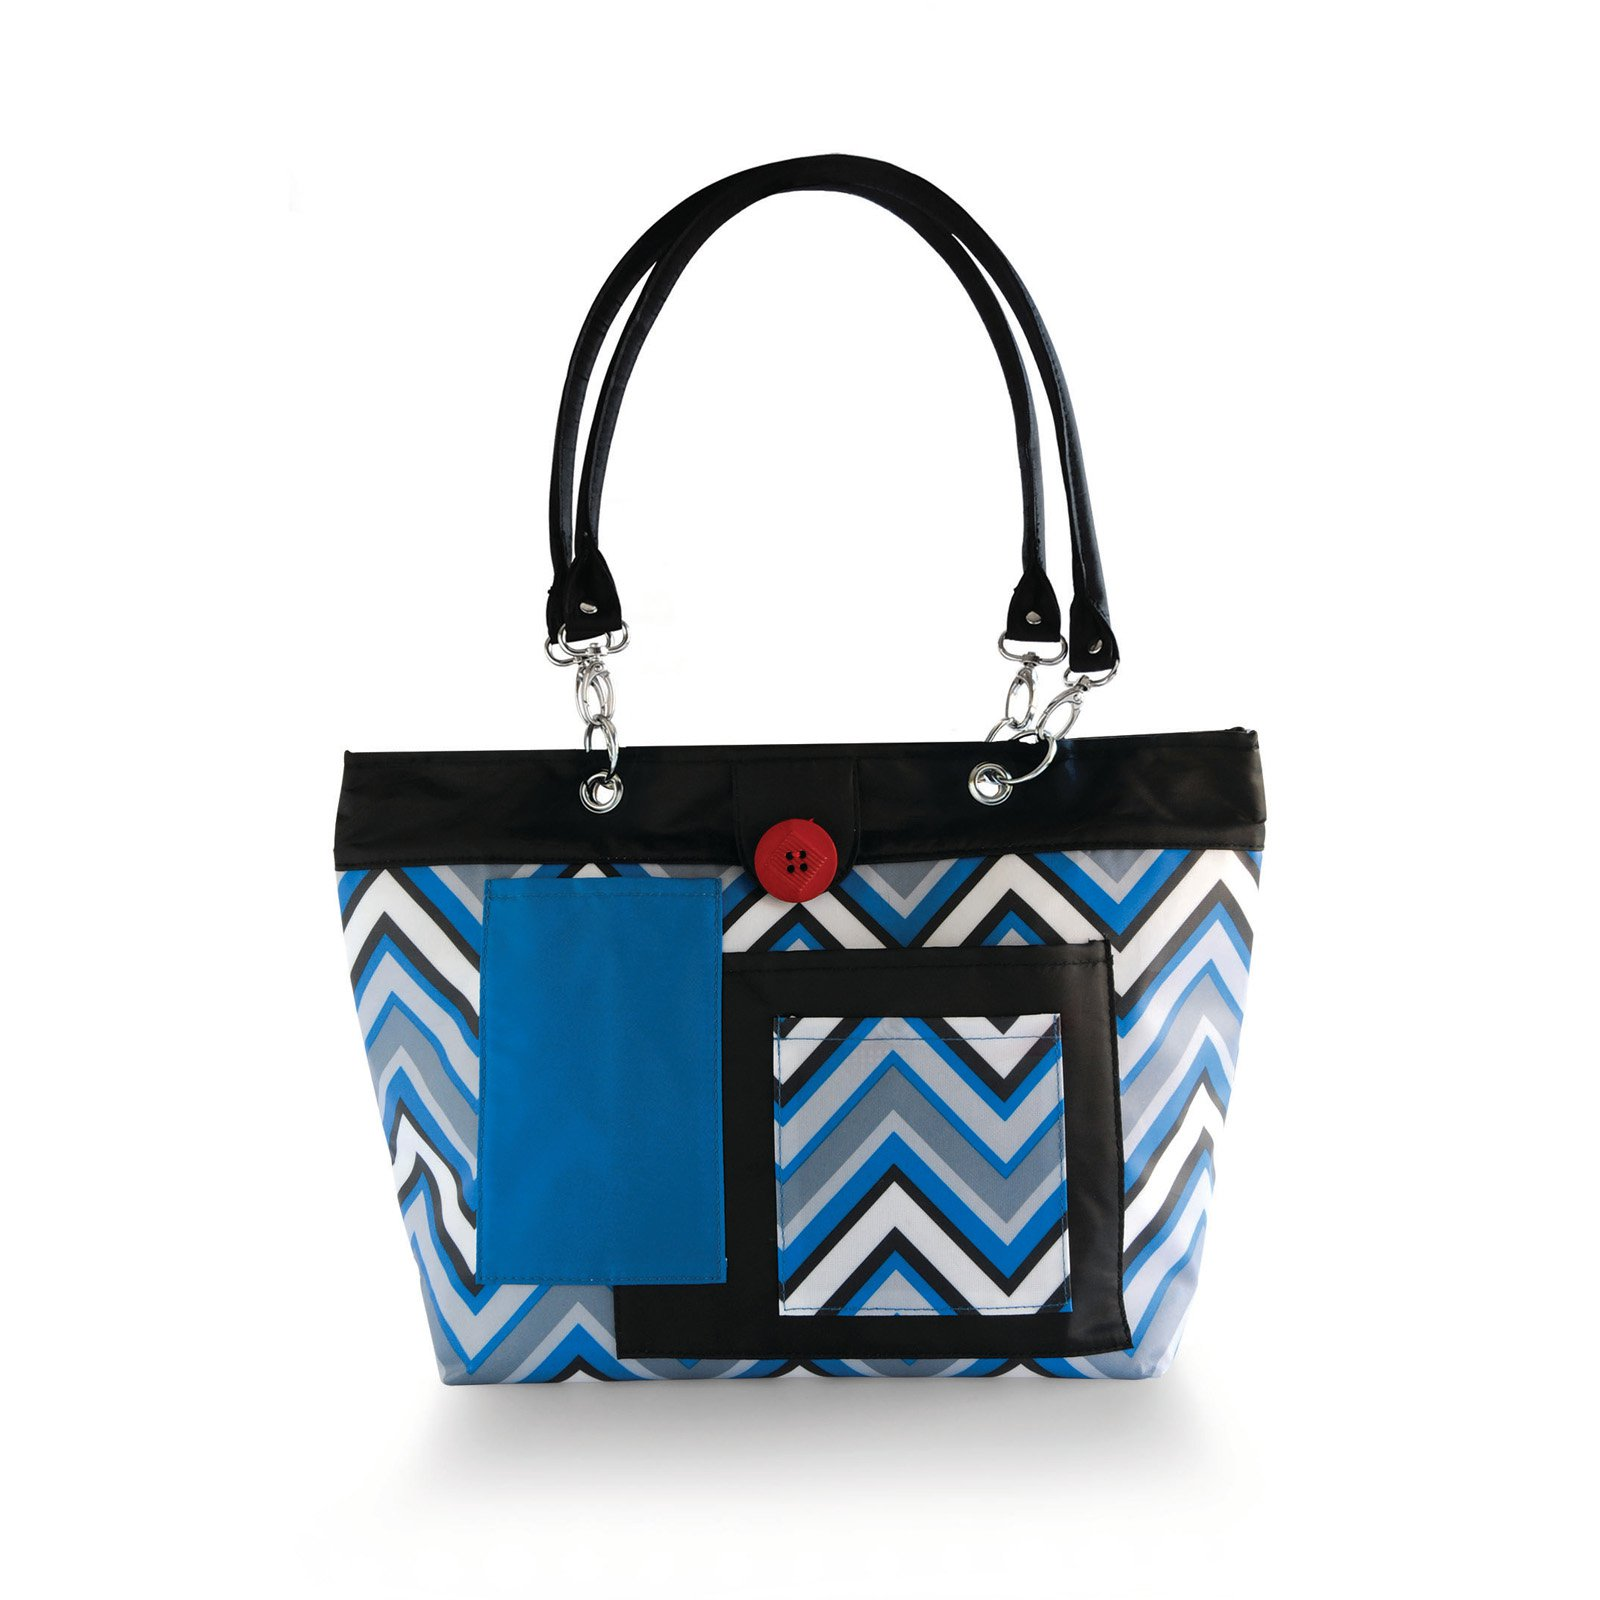 2 Red Hens Rooster Diaper Bag - Chevron Stripes Blue